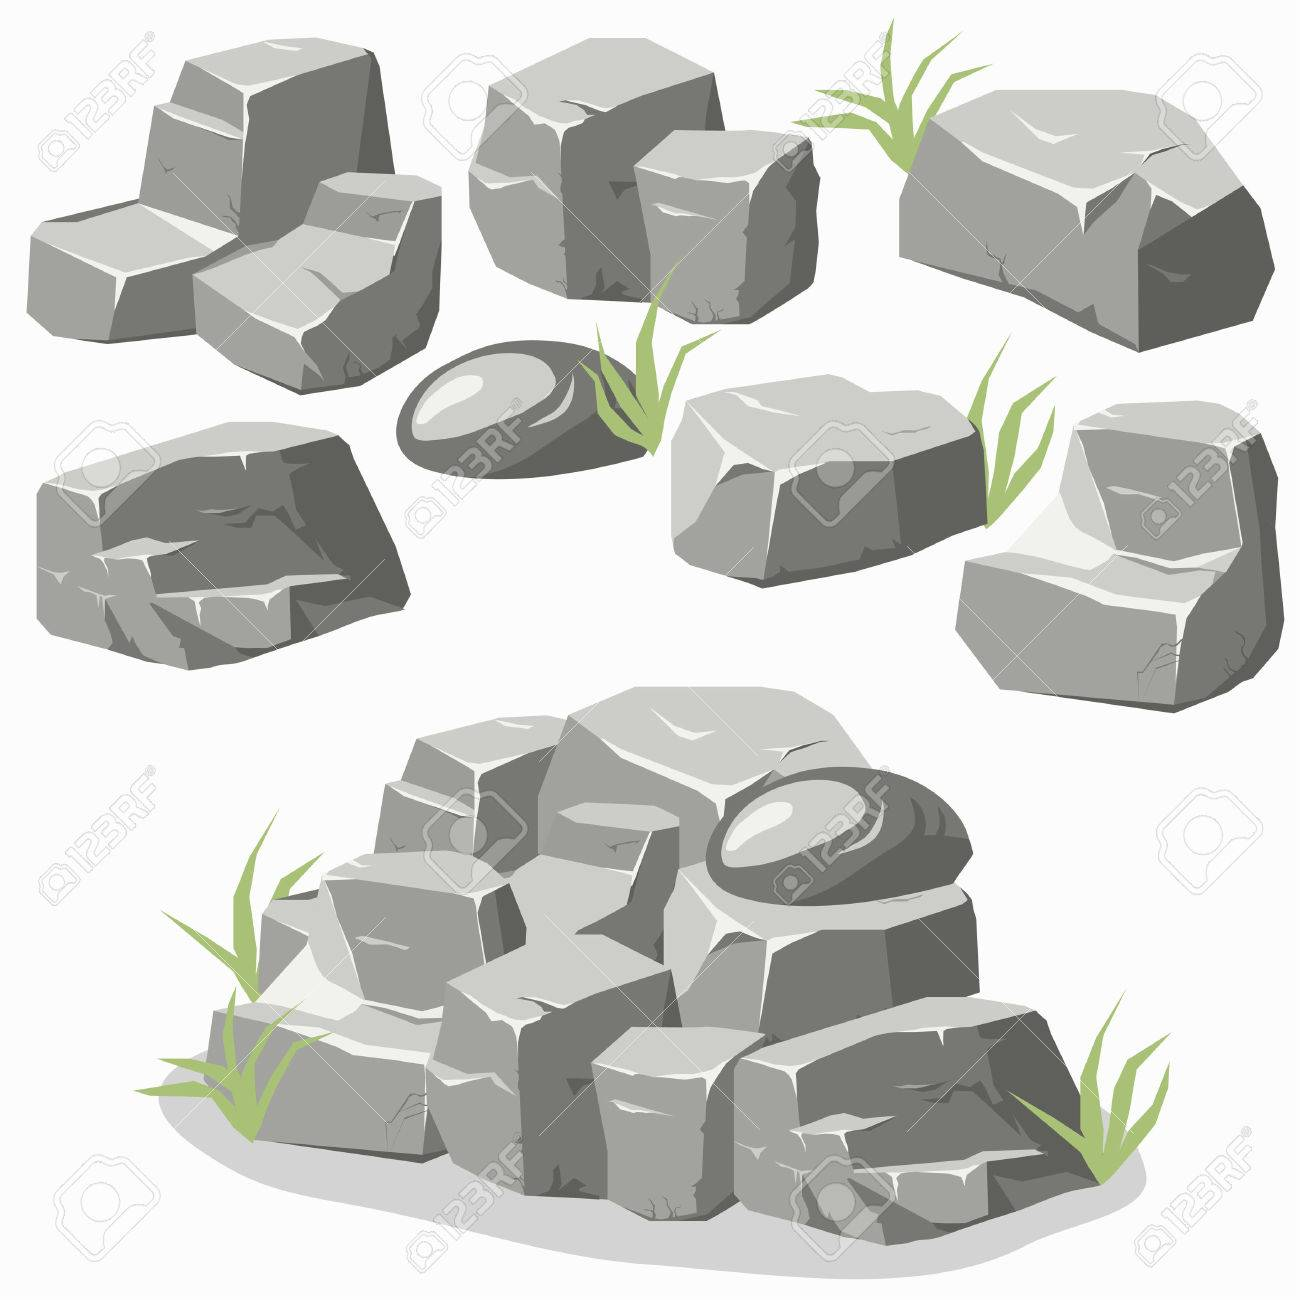 Rock stone set with grass. Stones and rocks in isometric 3d flat style. Set of different boulders - 52254837